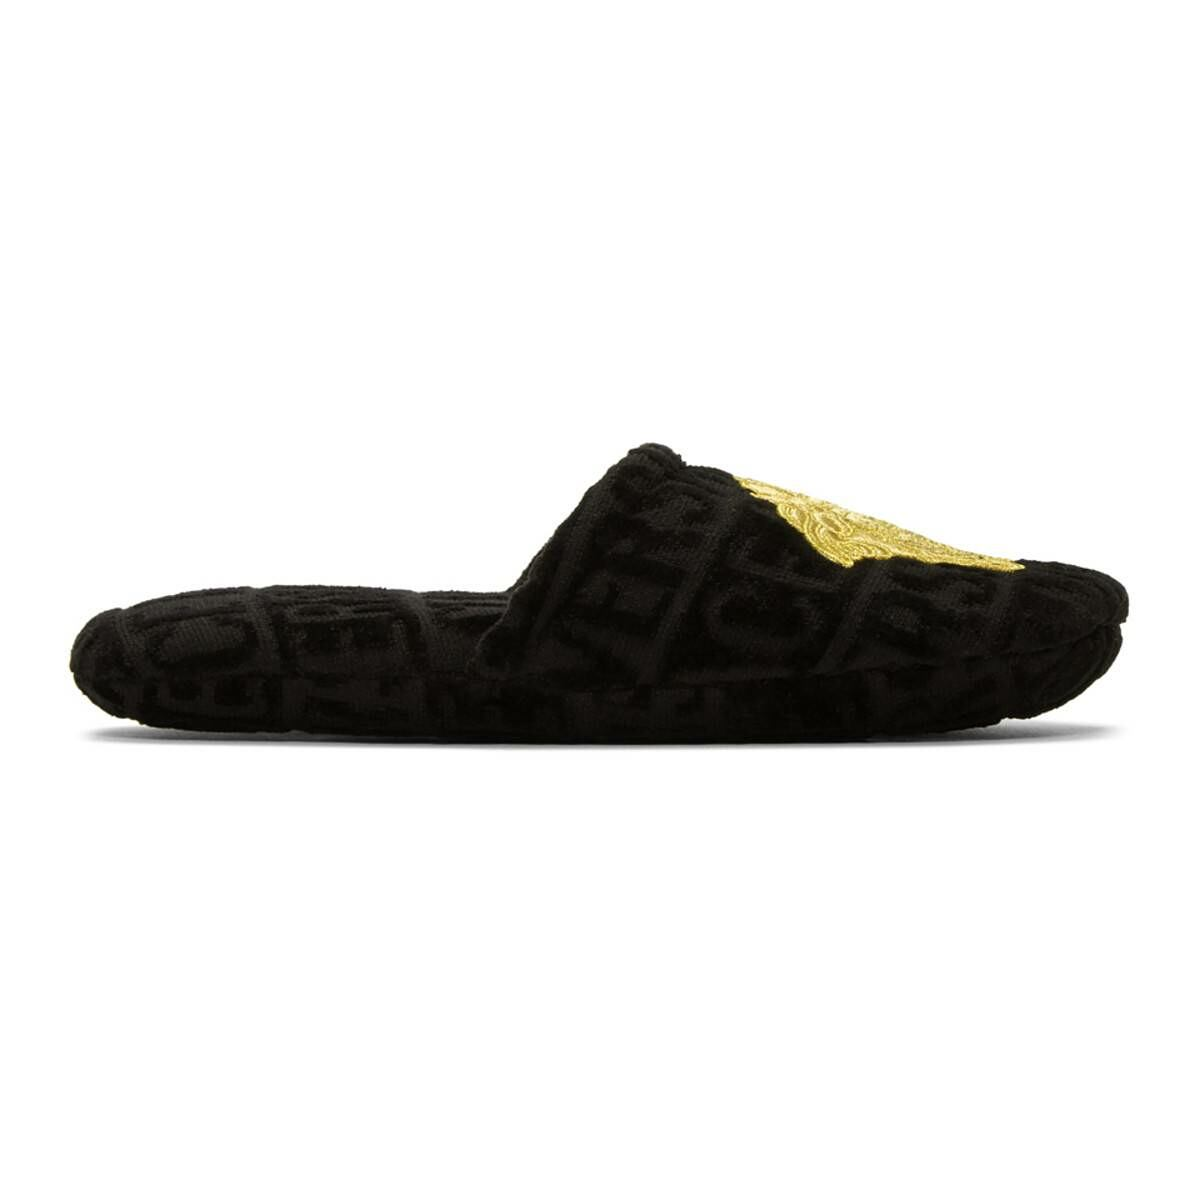 Versace Black Logomania Slippers Ssense USA MEN Men SHOES Mens LOAFERS